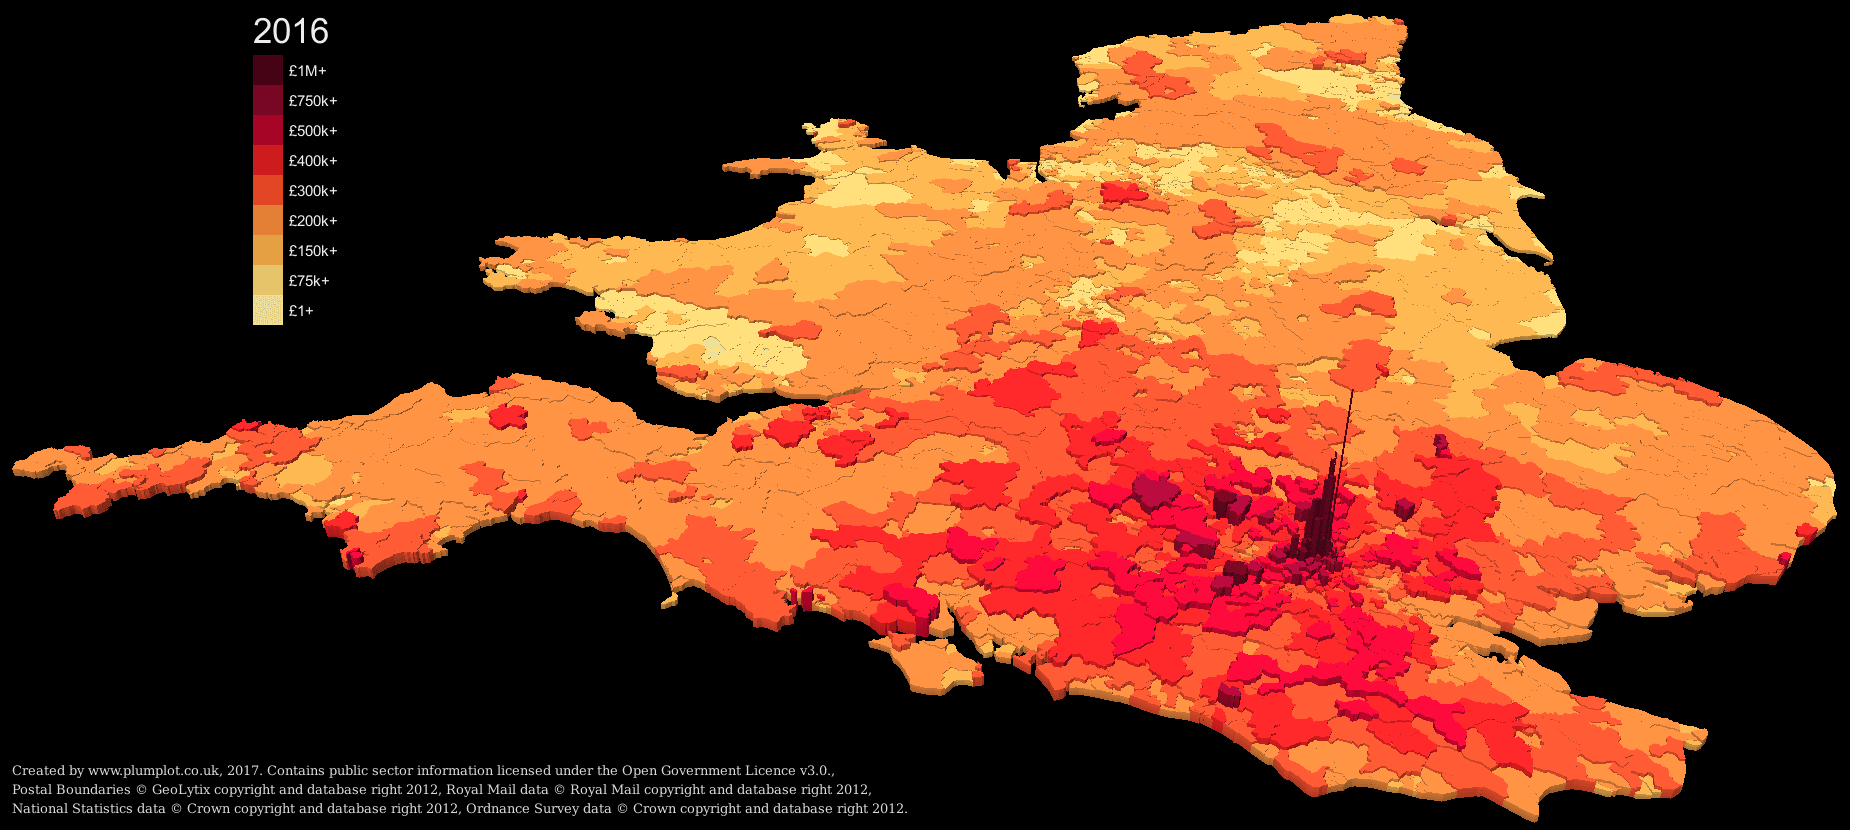 Uk average property price 3D map by postcode district.